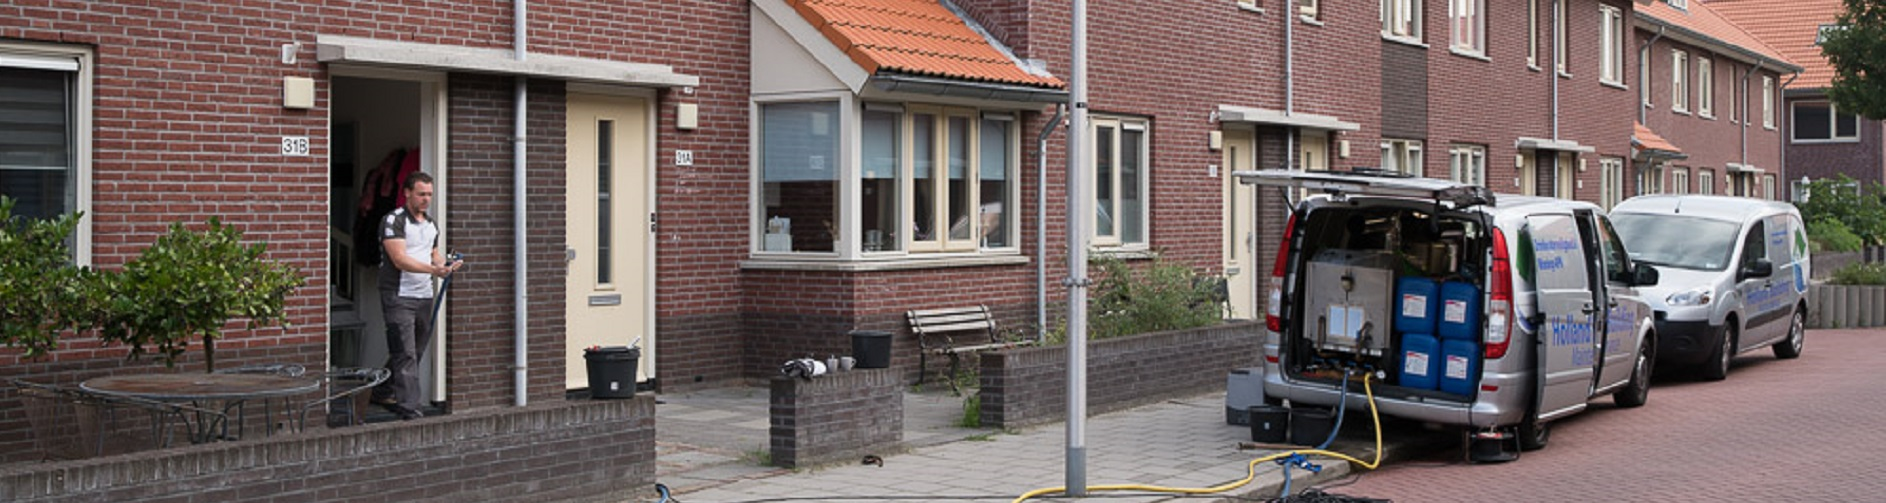 https://www.hollandbuilding.nl/wp-content/uploads/2016/09/160808003.jpg